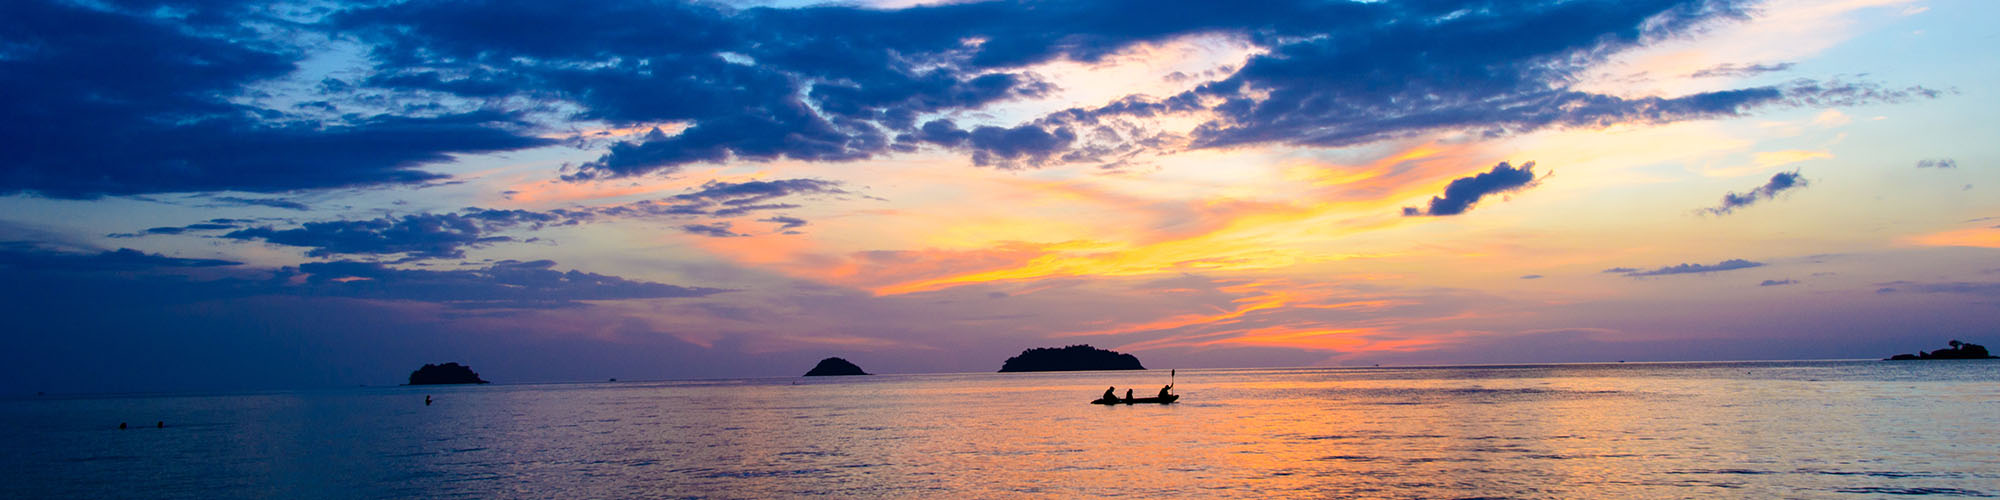 Sunset, Koh Chang,Thailande